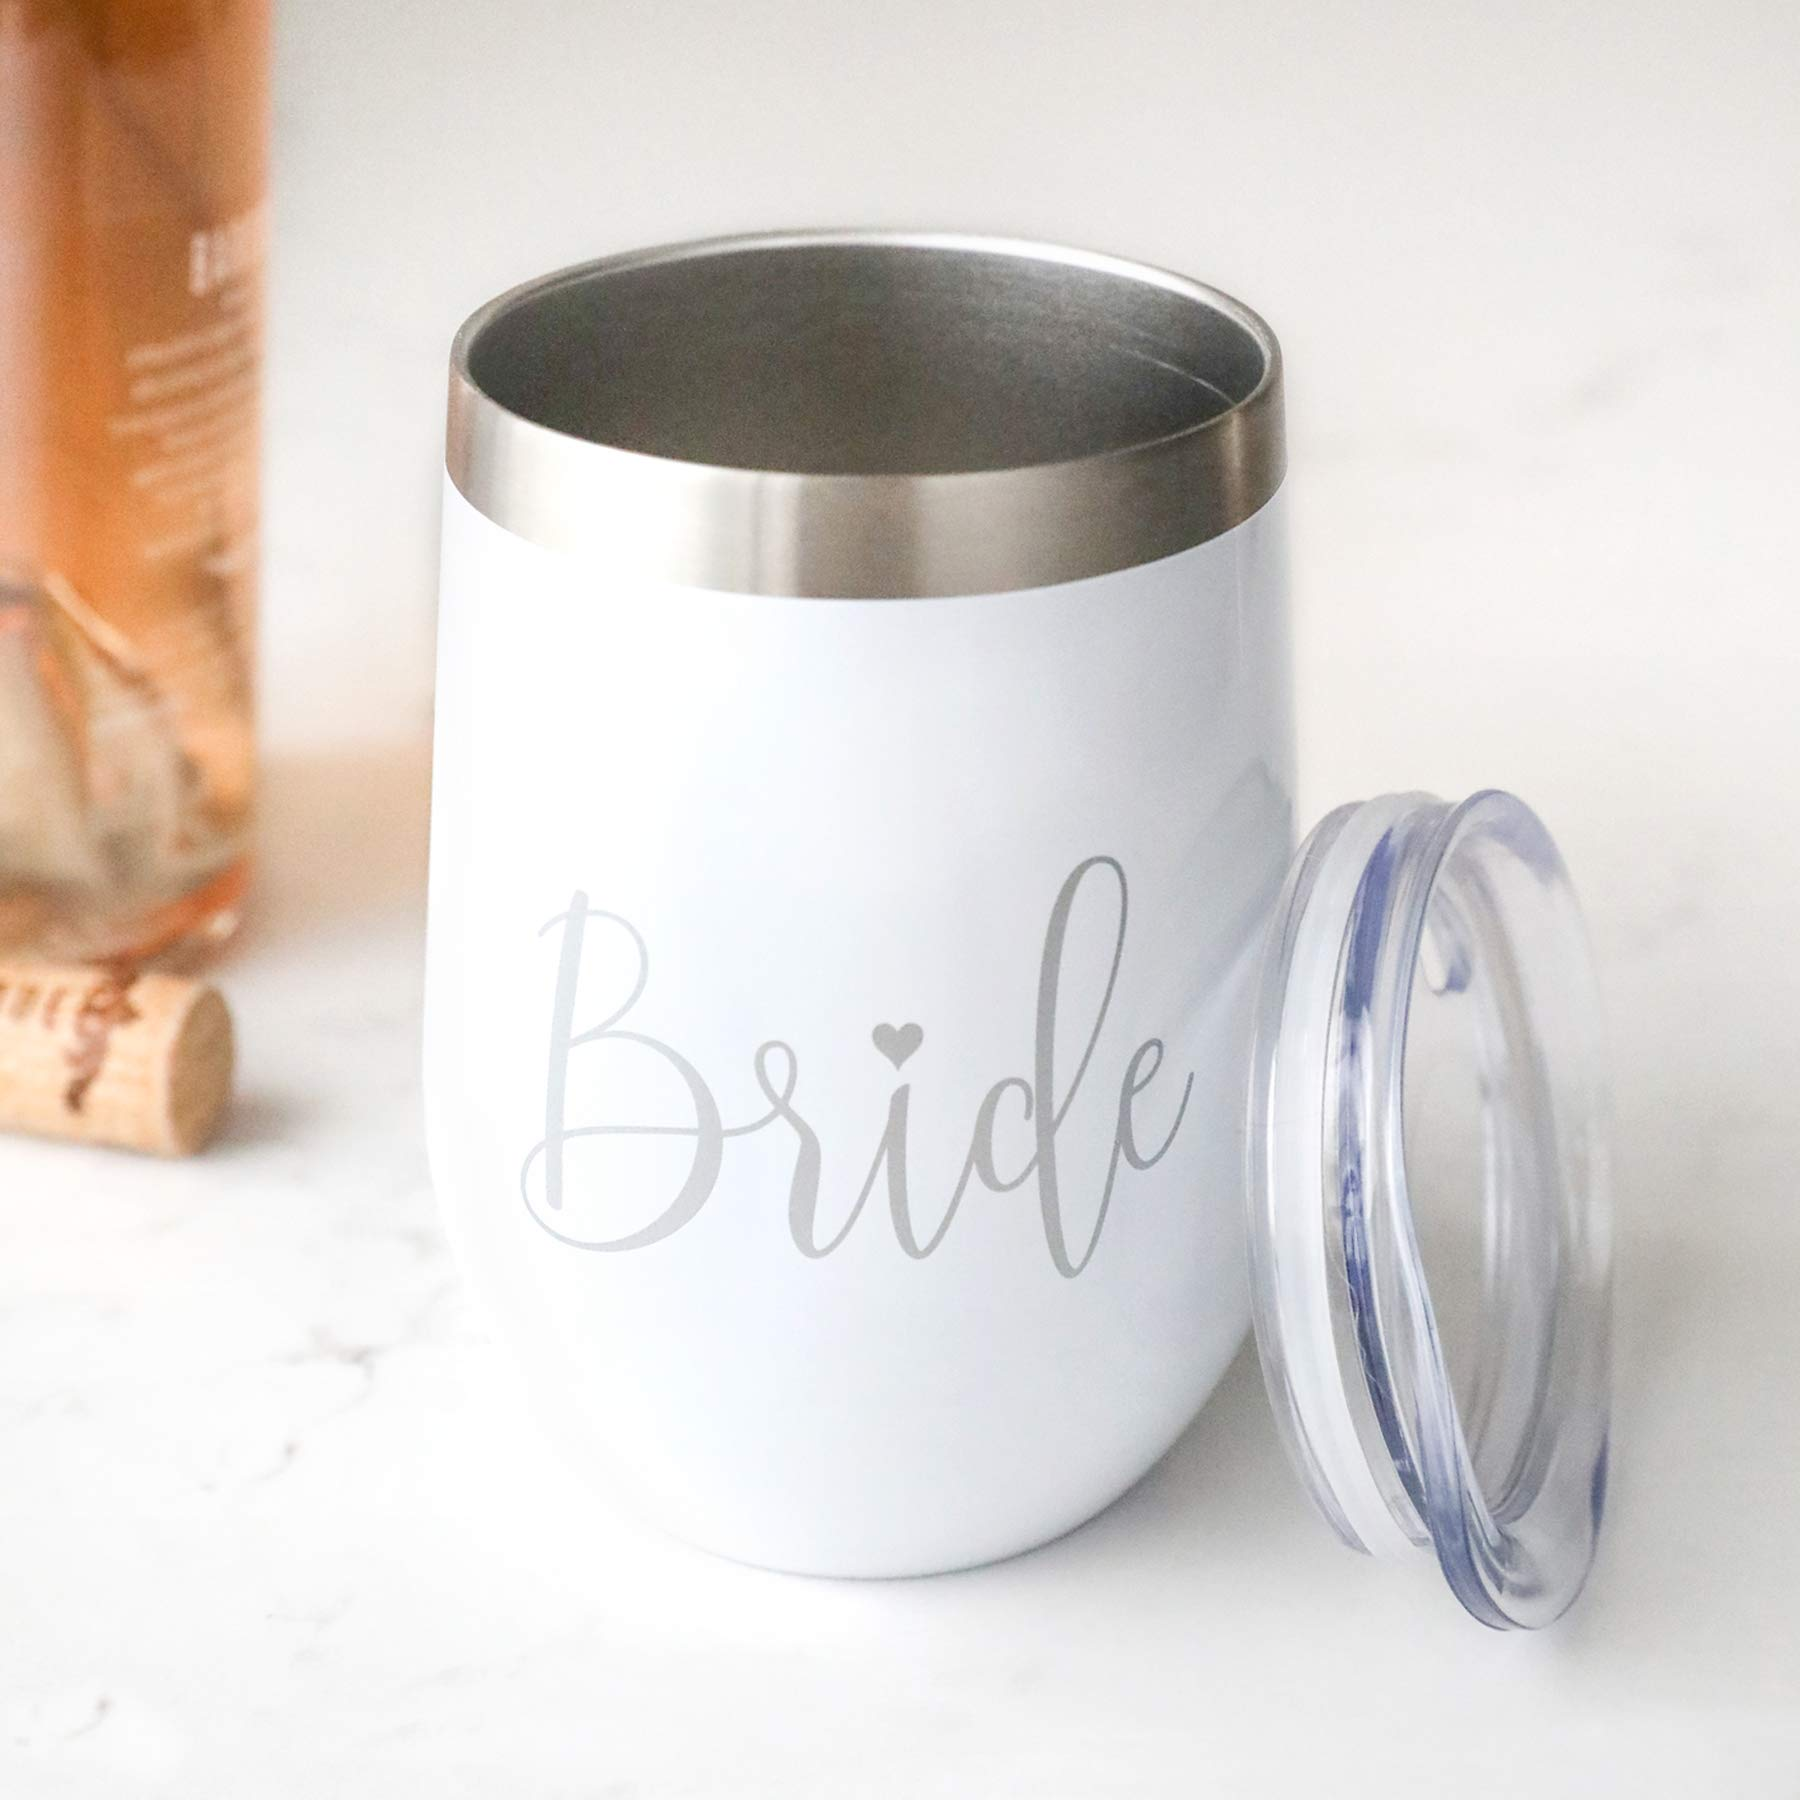 Bride Wine Tumbler with Lid - 12 oz Double Wall Vacuumed Wine, White and Silver Stainless Steel Cup, Perfect Engagement Party, Bridal Shower, Bachelorette Party or Wedding Gift - BPA FREE by Bliss Collections (Image #1)